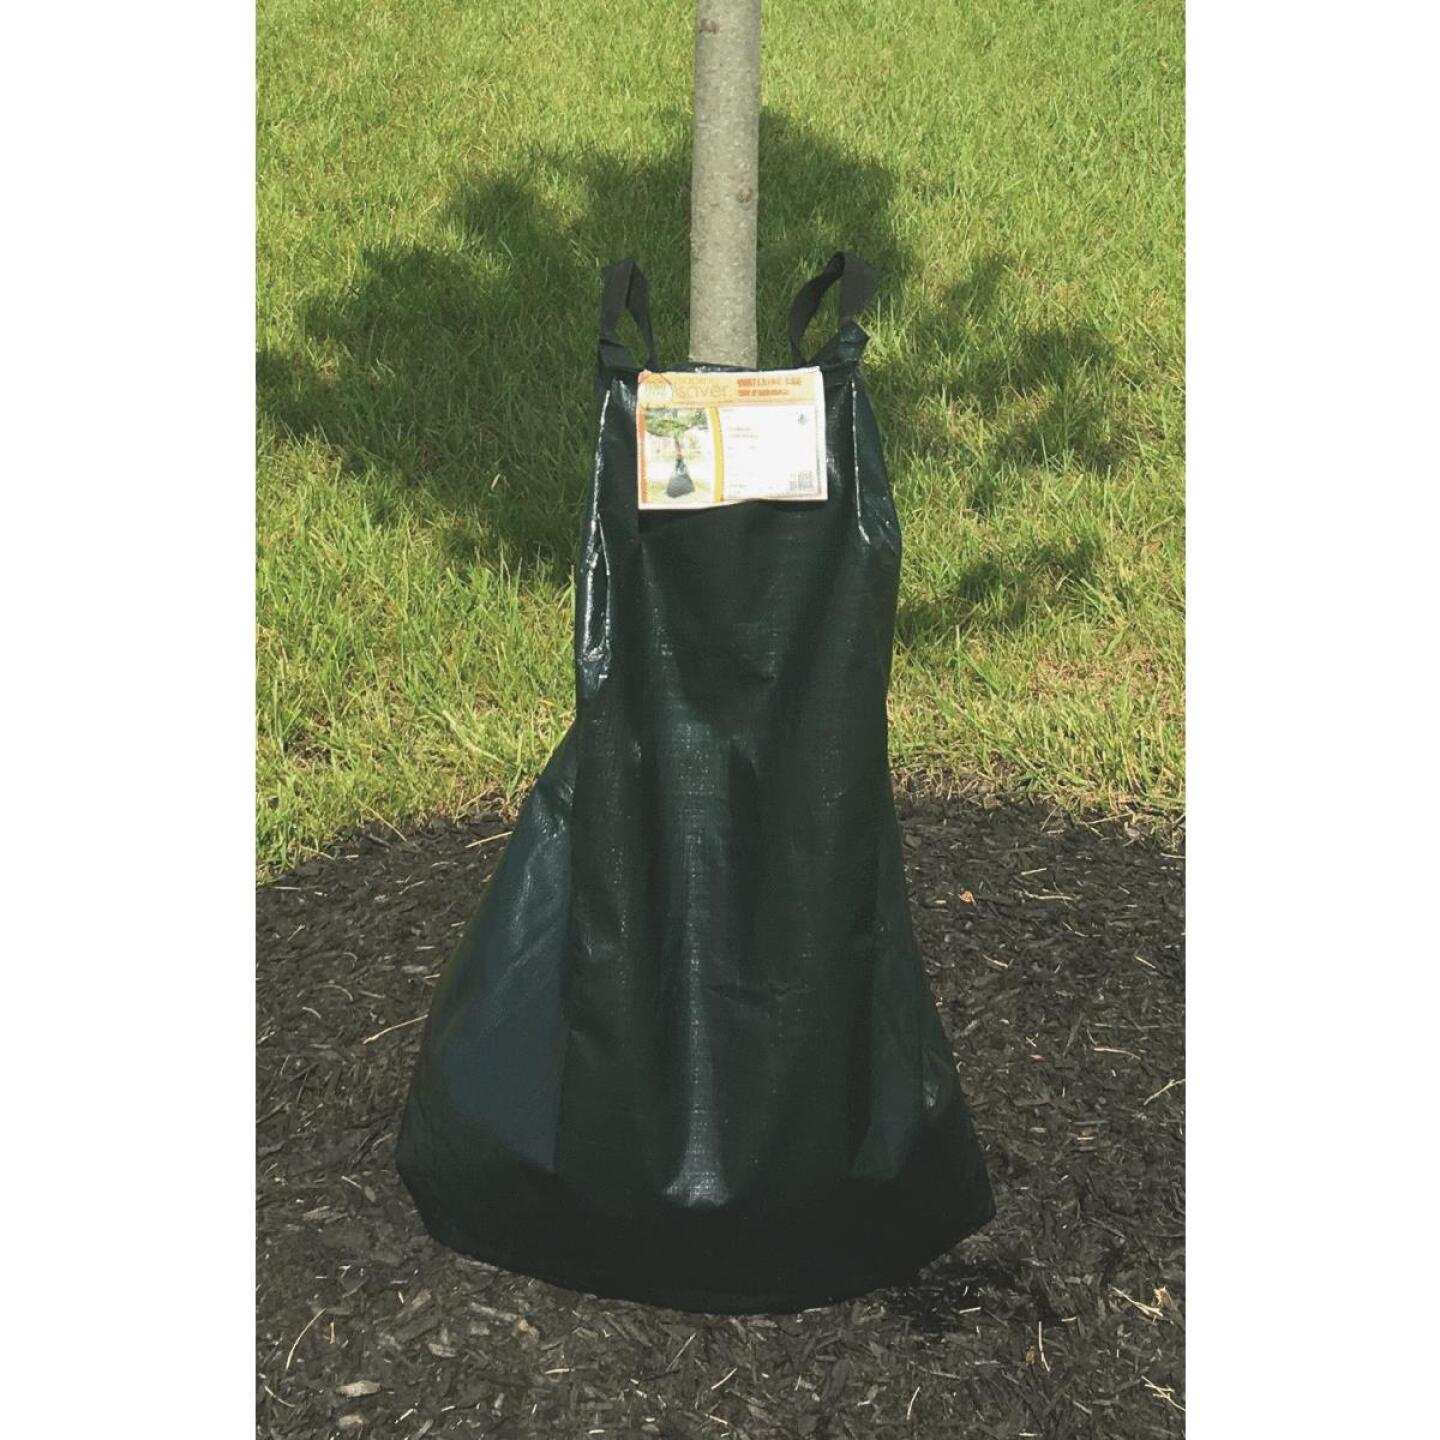 Oak Hill Unlimited Around the Home and Farm 20 Gal. Green Polyethylene Tree Watering Bag Image 1